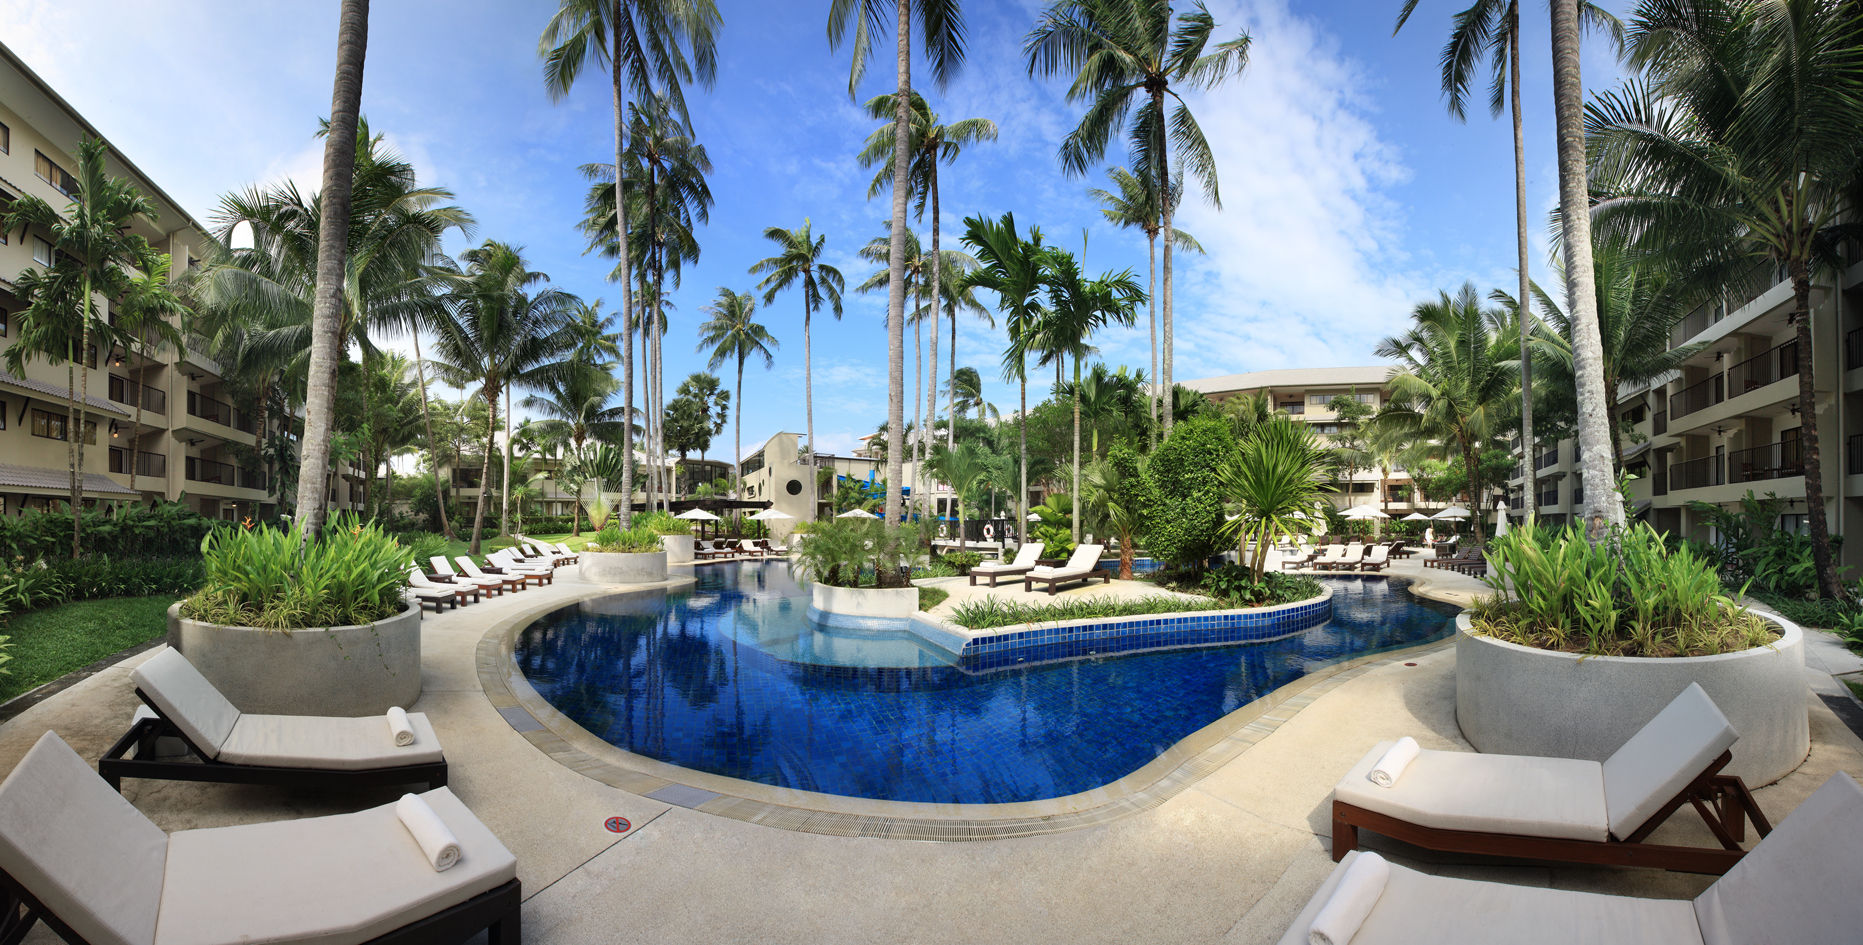 Séjour Thaïlande - Novotel Phuket Surin Beach Resort (ex Double Tree by Hilton)